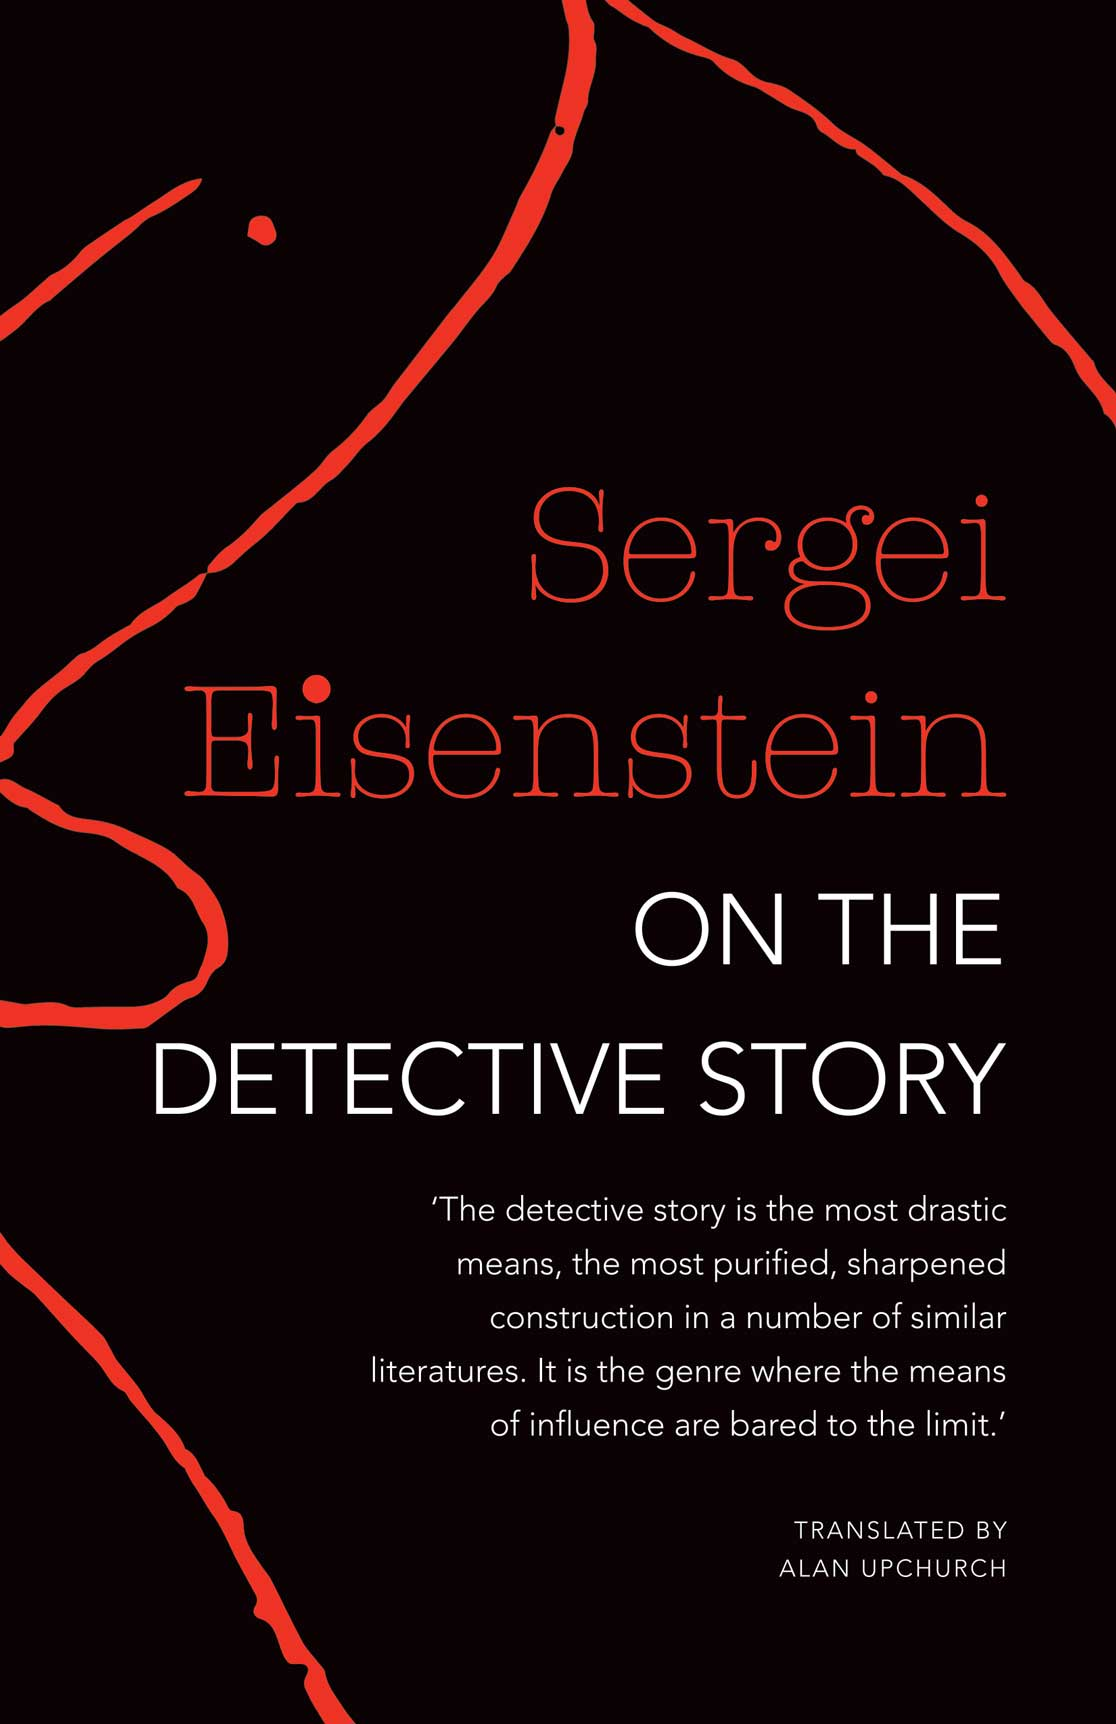 On the Detective Story by SERGEI EISENSTEIN | Seagull Books